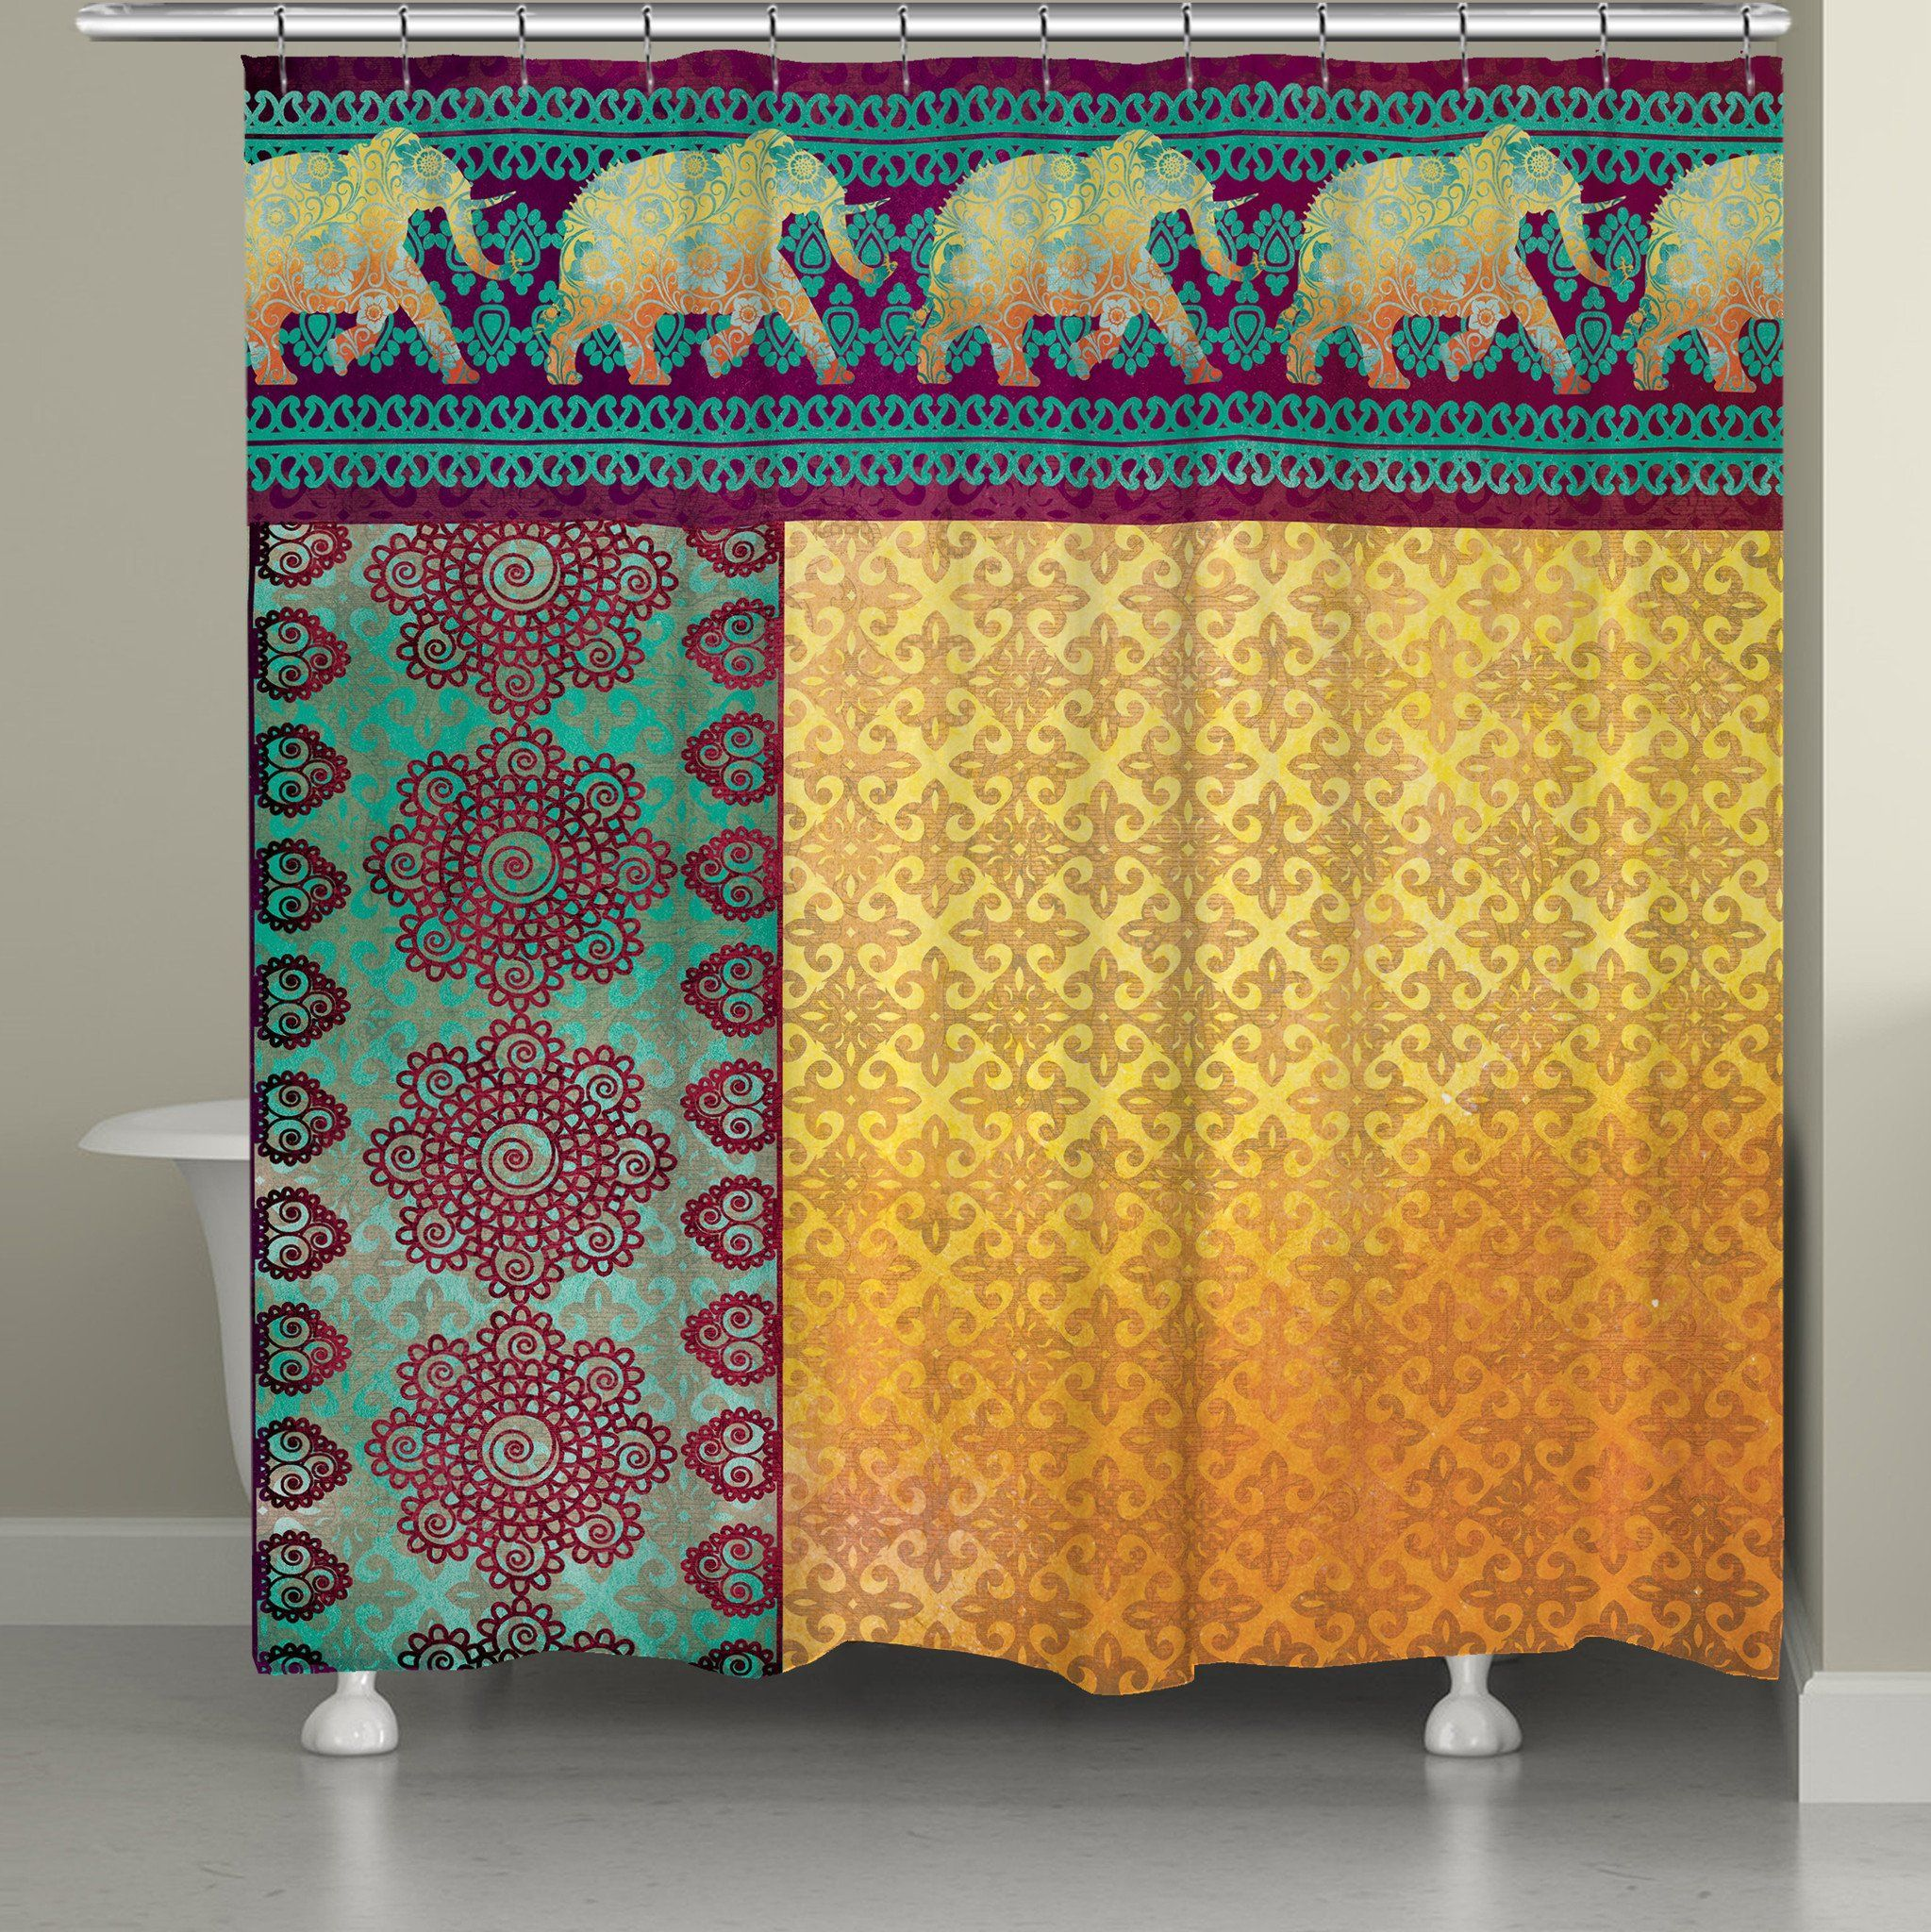 Bright Colors And Global Patterns With A Parade Of Elephants